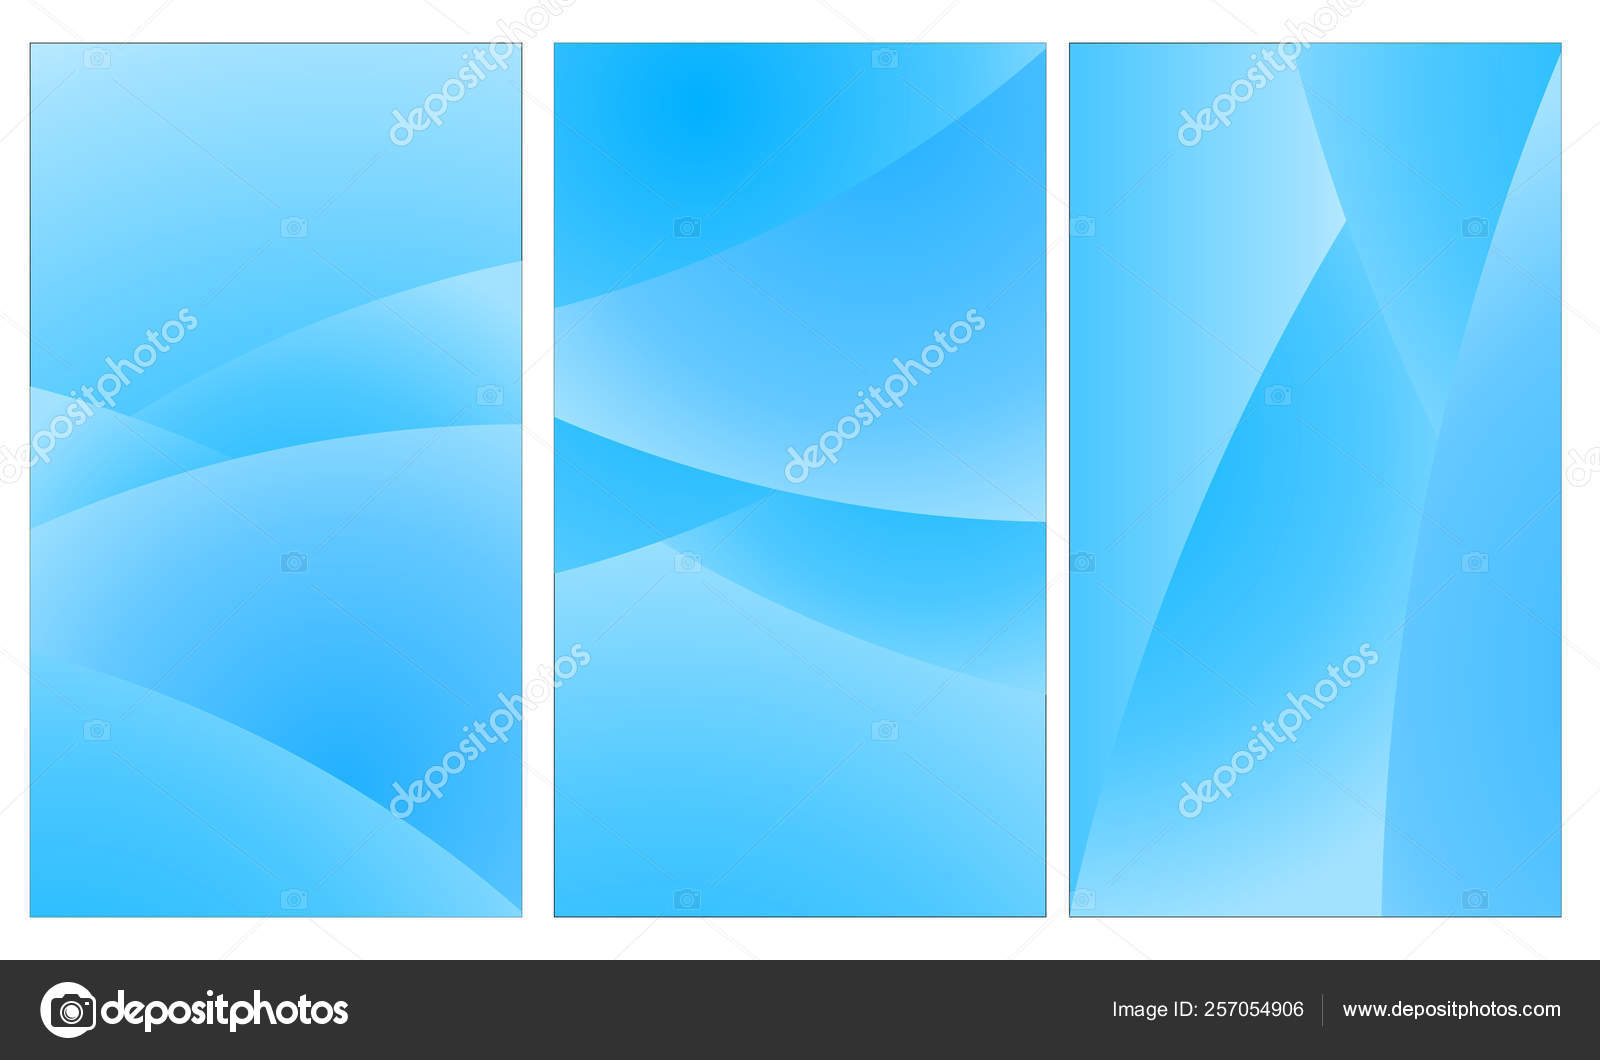 Download 7000 Wallpaper Android Vector  Terbaik